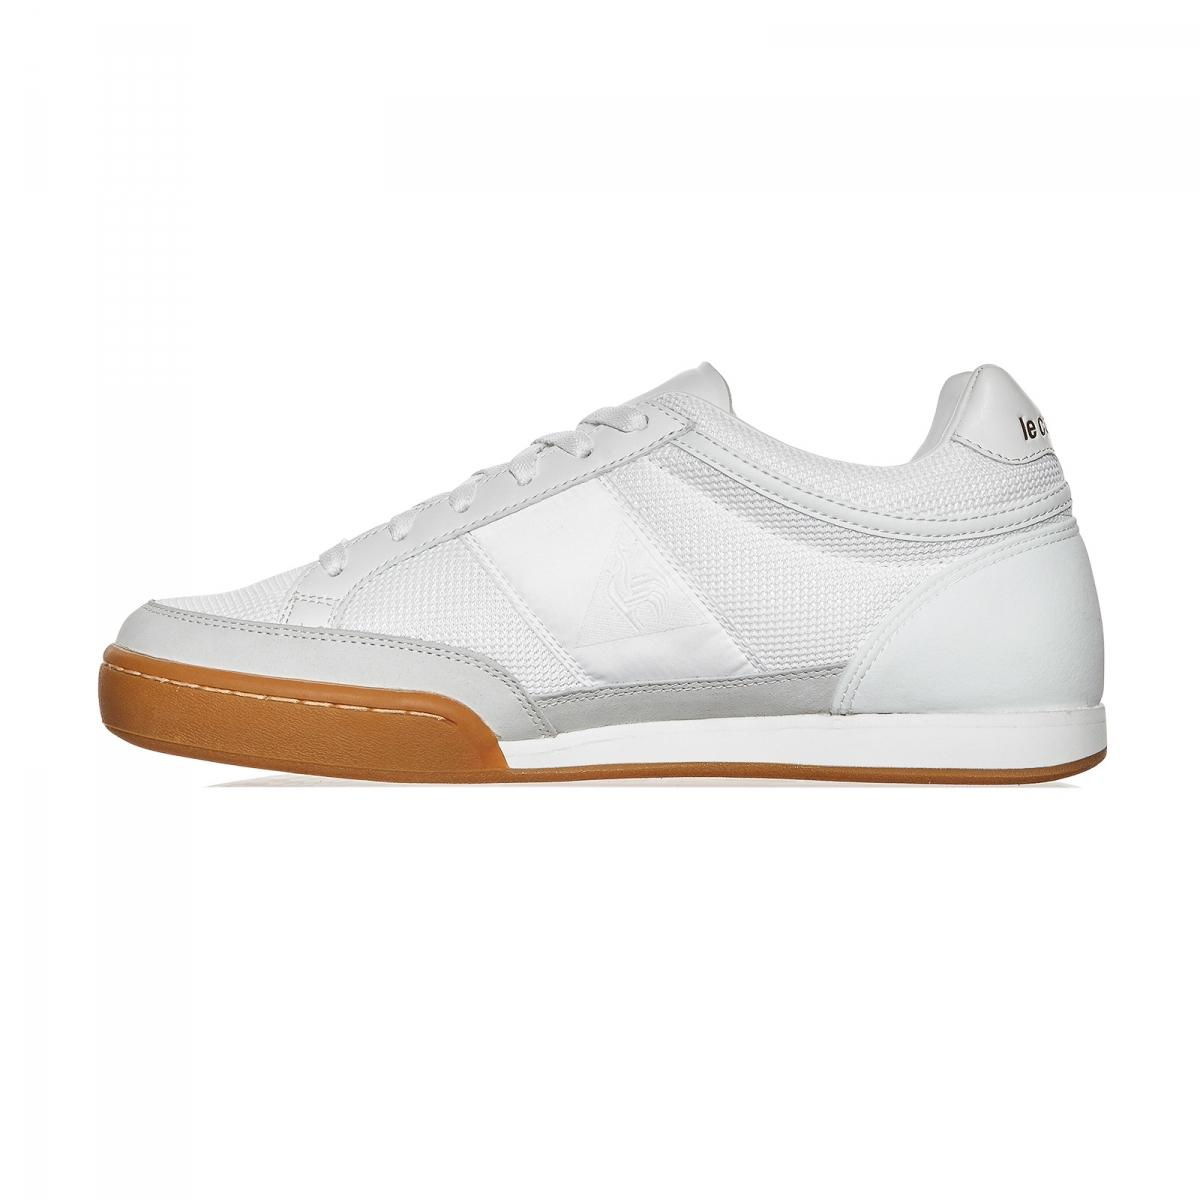 lyst le coq sportif dominator sneakers in white. Black Bedroom Furniture Sets. Home Design Ideas